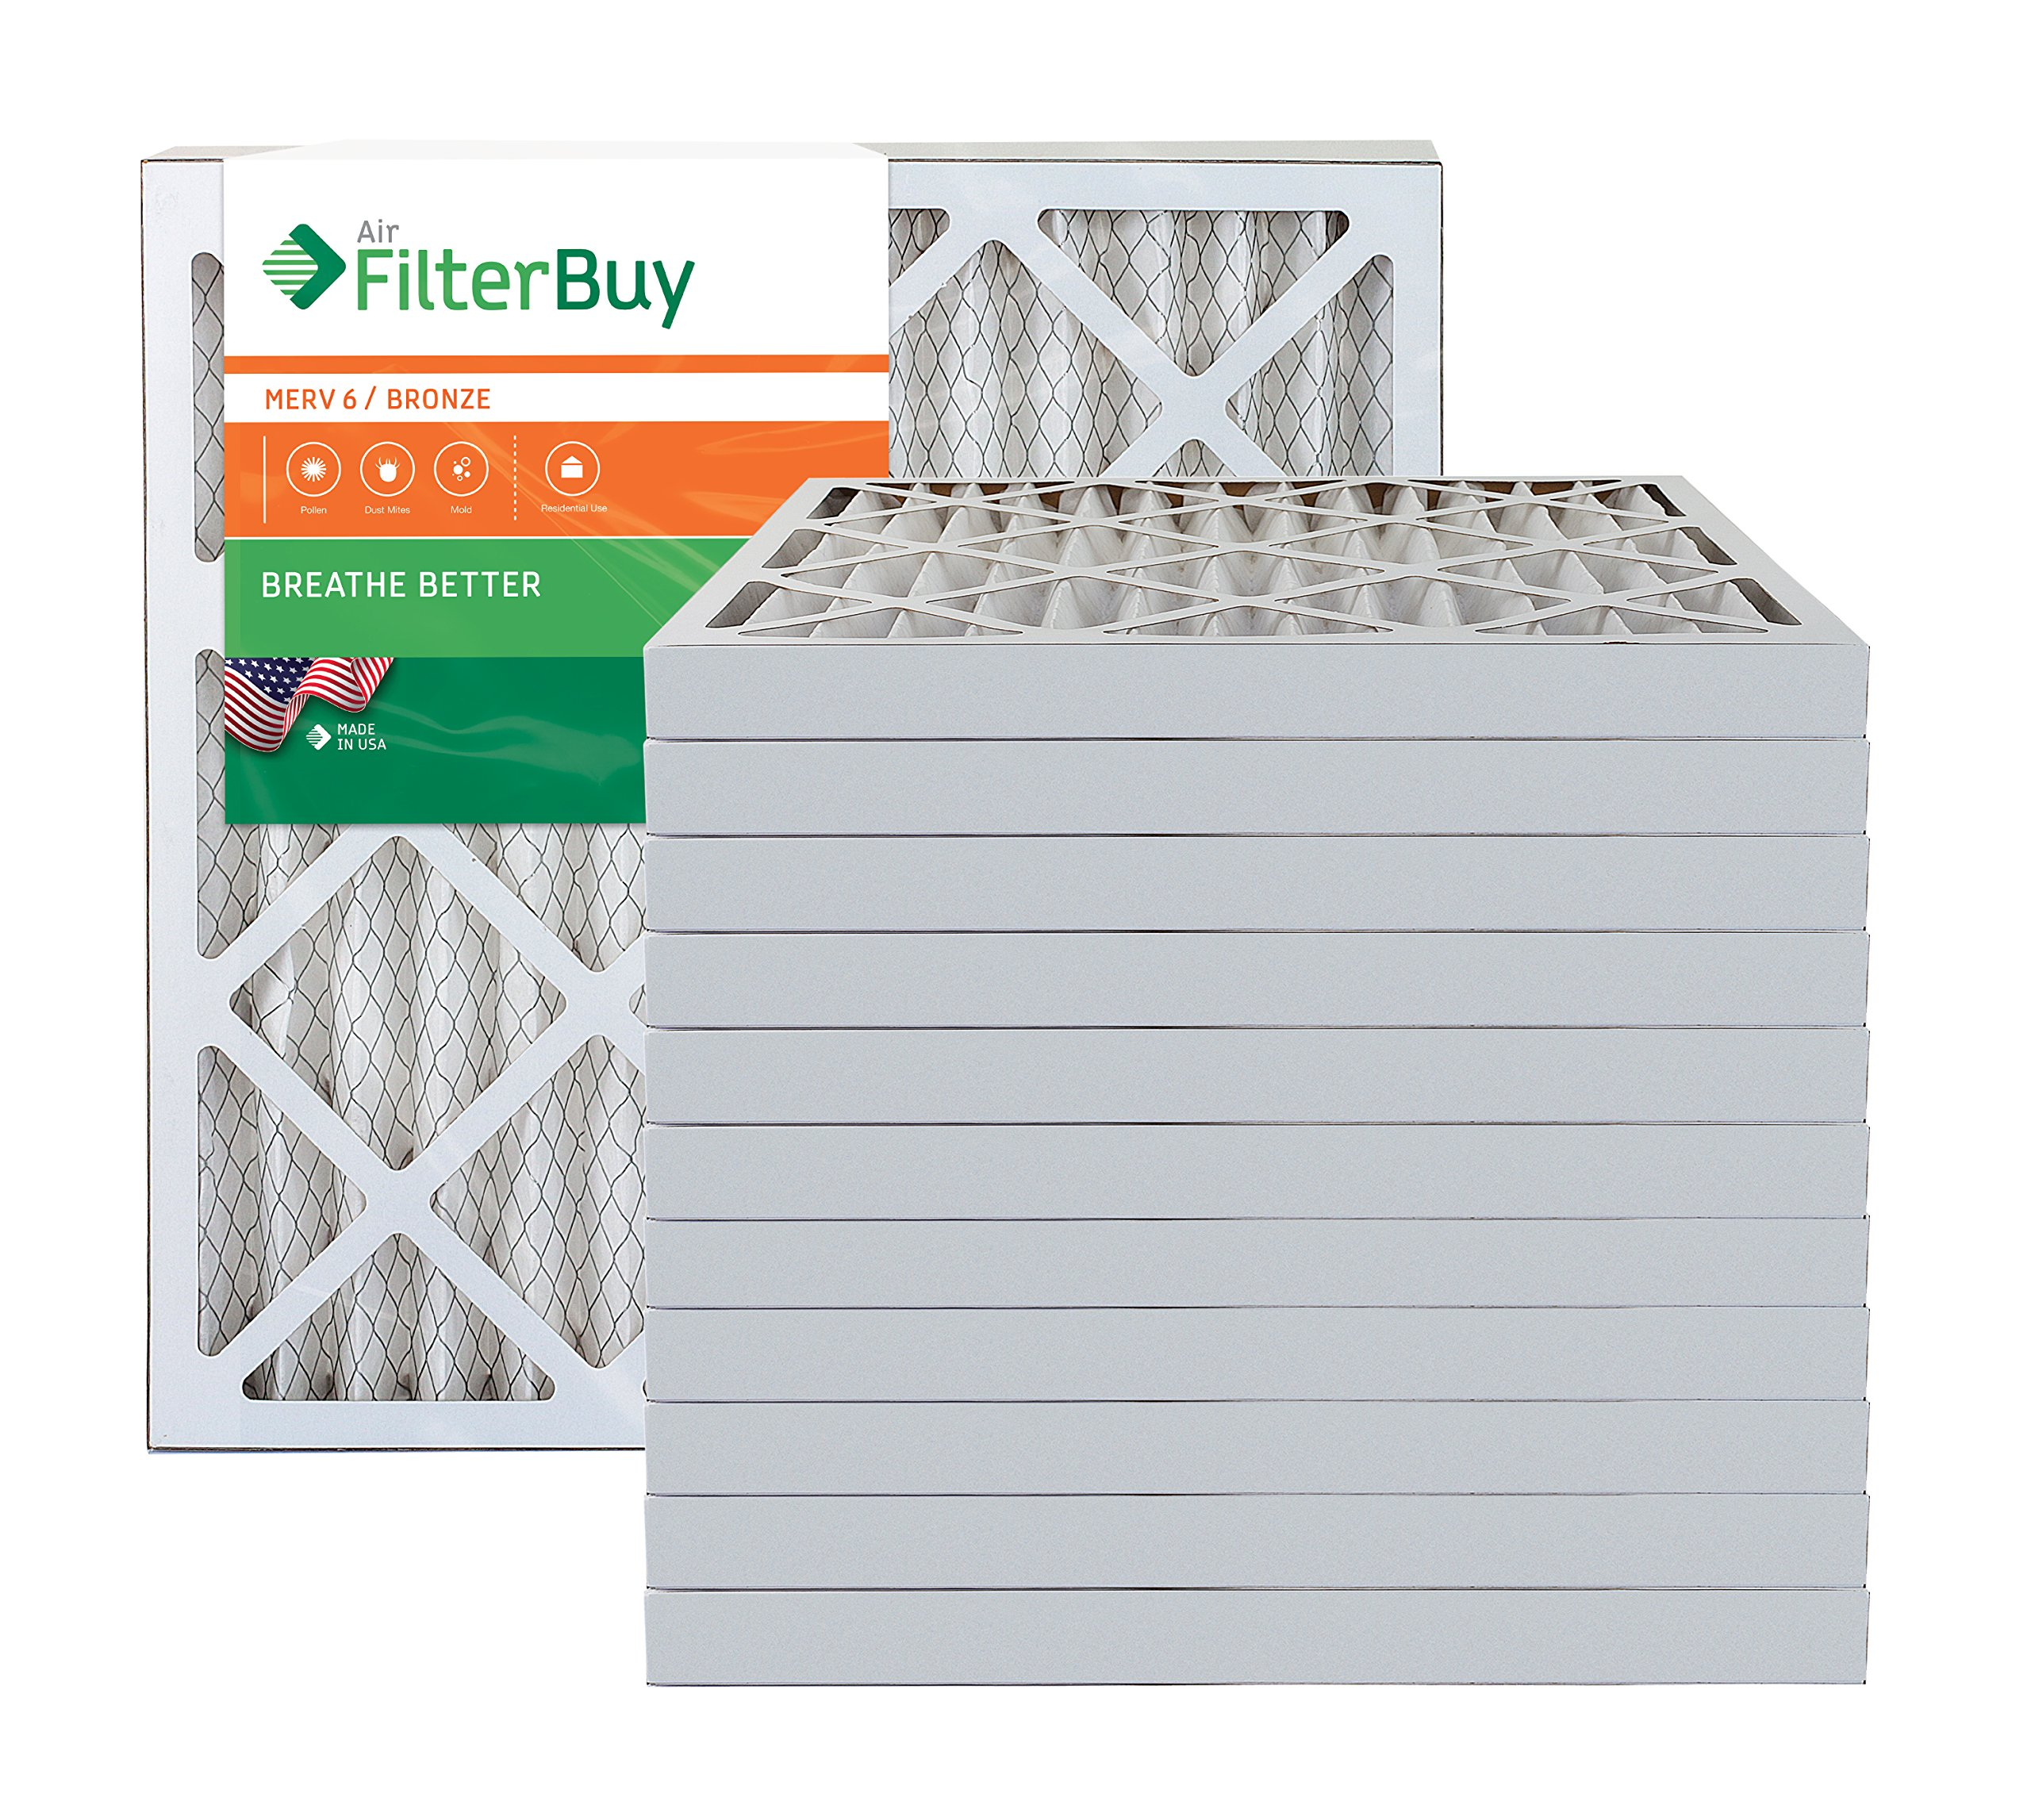 AFB Bronze MERV 6 20x20x2 Pleated AC Furnace Air Filter. Pack of 12 Filters. 100% produced in the USA.